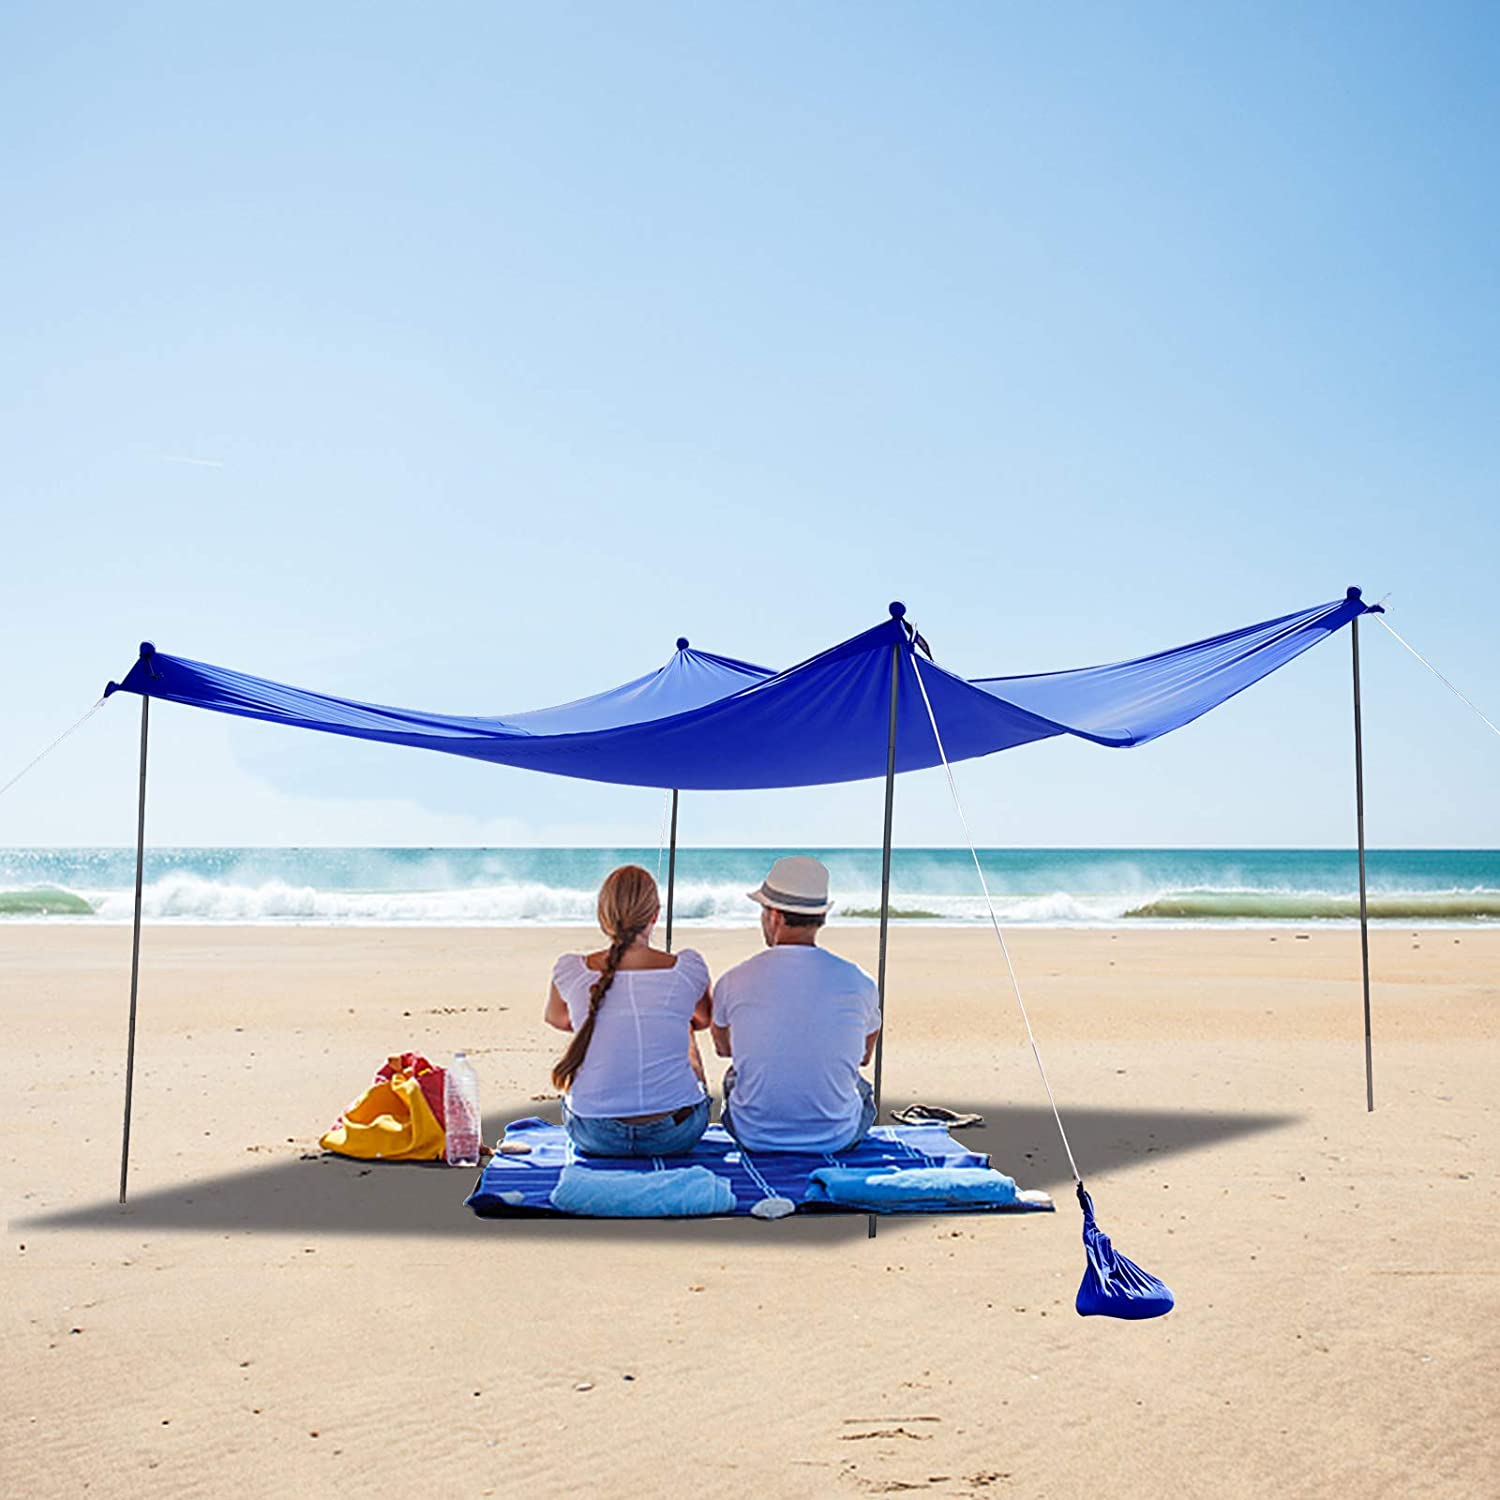 Beach Tent Store Sun Shelter New products, world's highest quality popular! 7x7.5 FT Pole Pop 4 Up Canopy